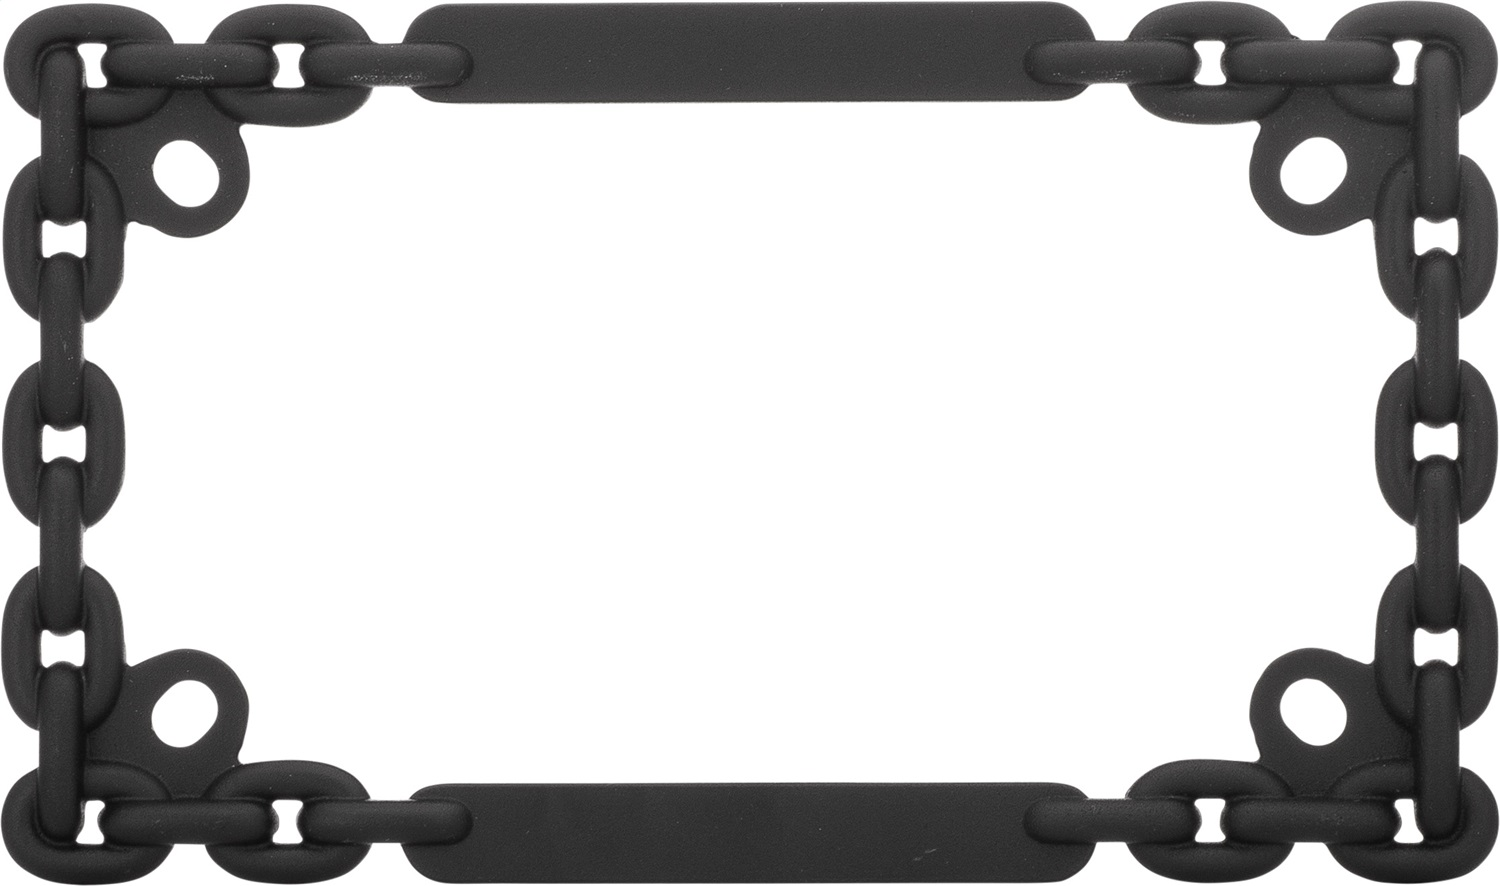 Cruiser Accessories Mc Chain License Plate Frame Matte